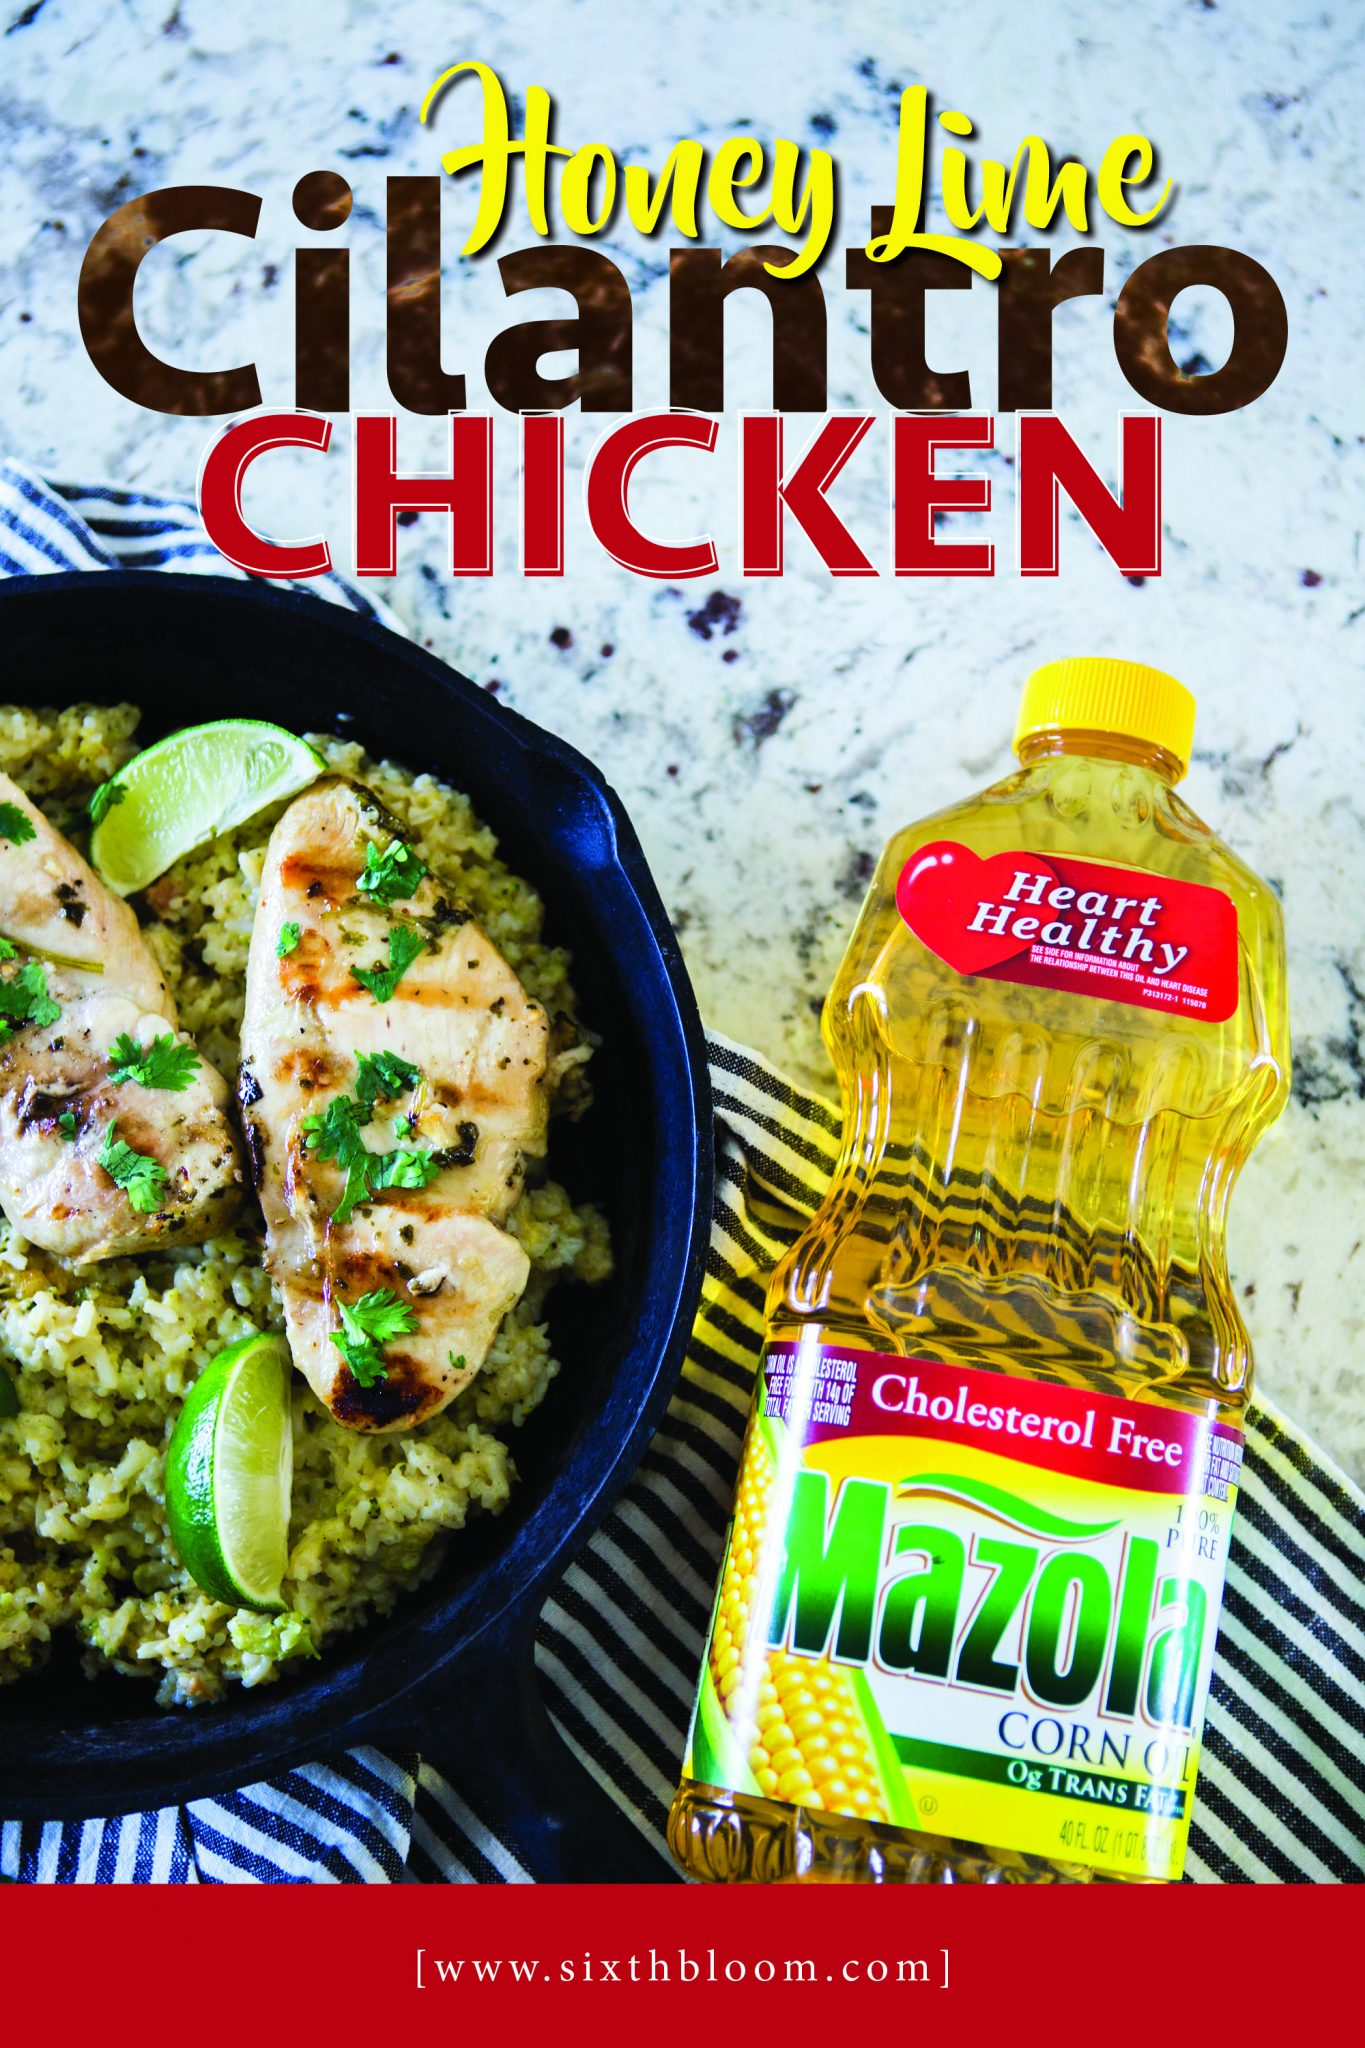 honey lime chicken grilled